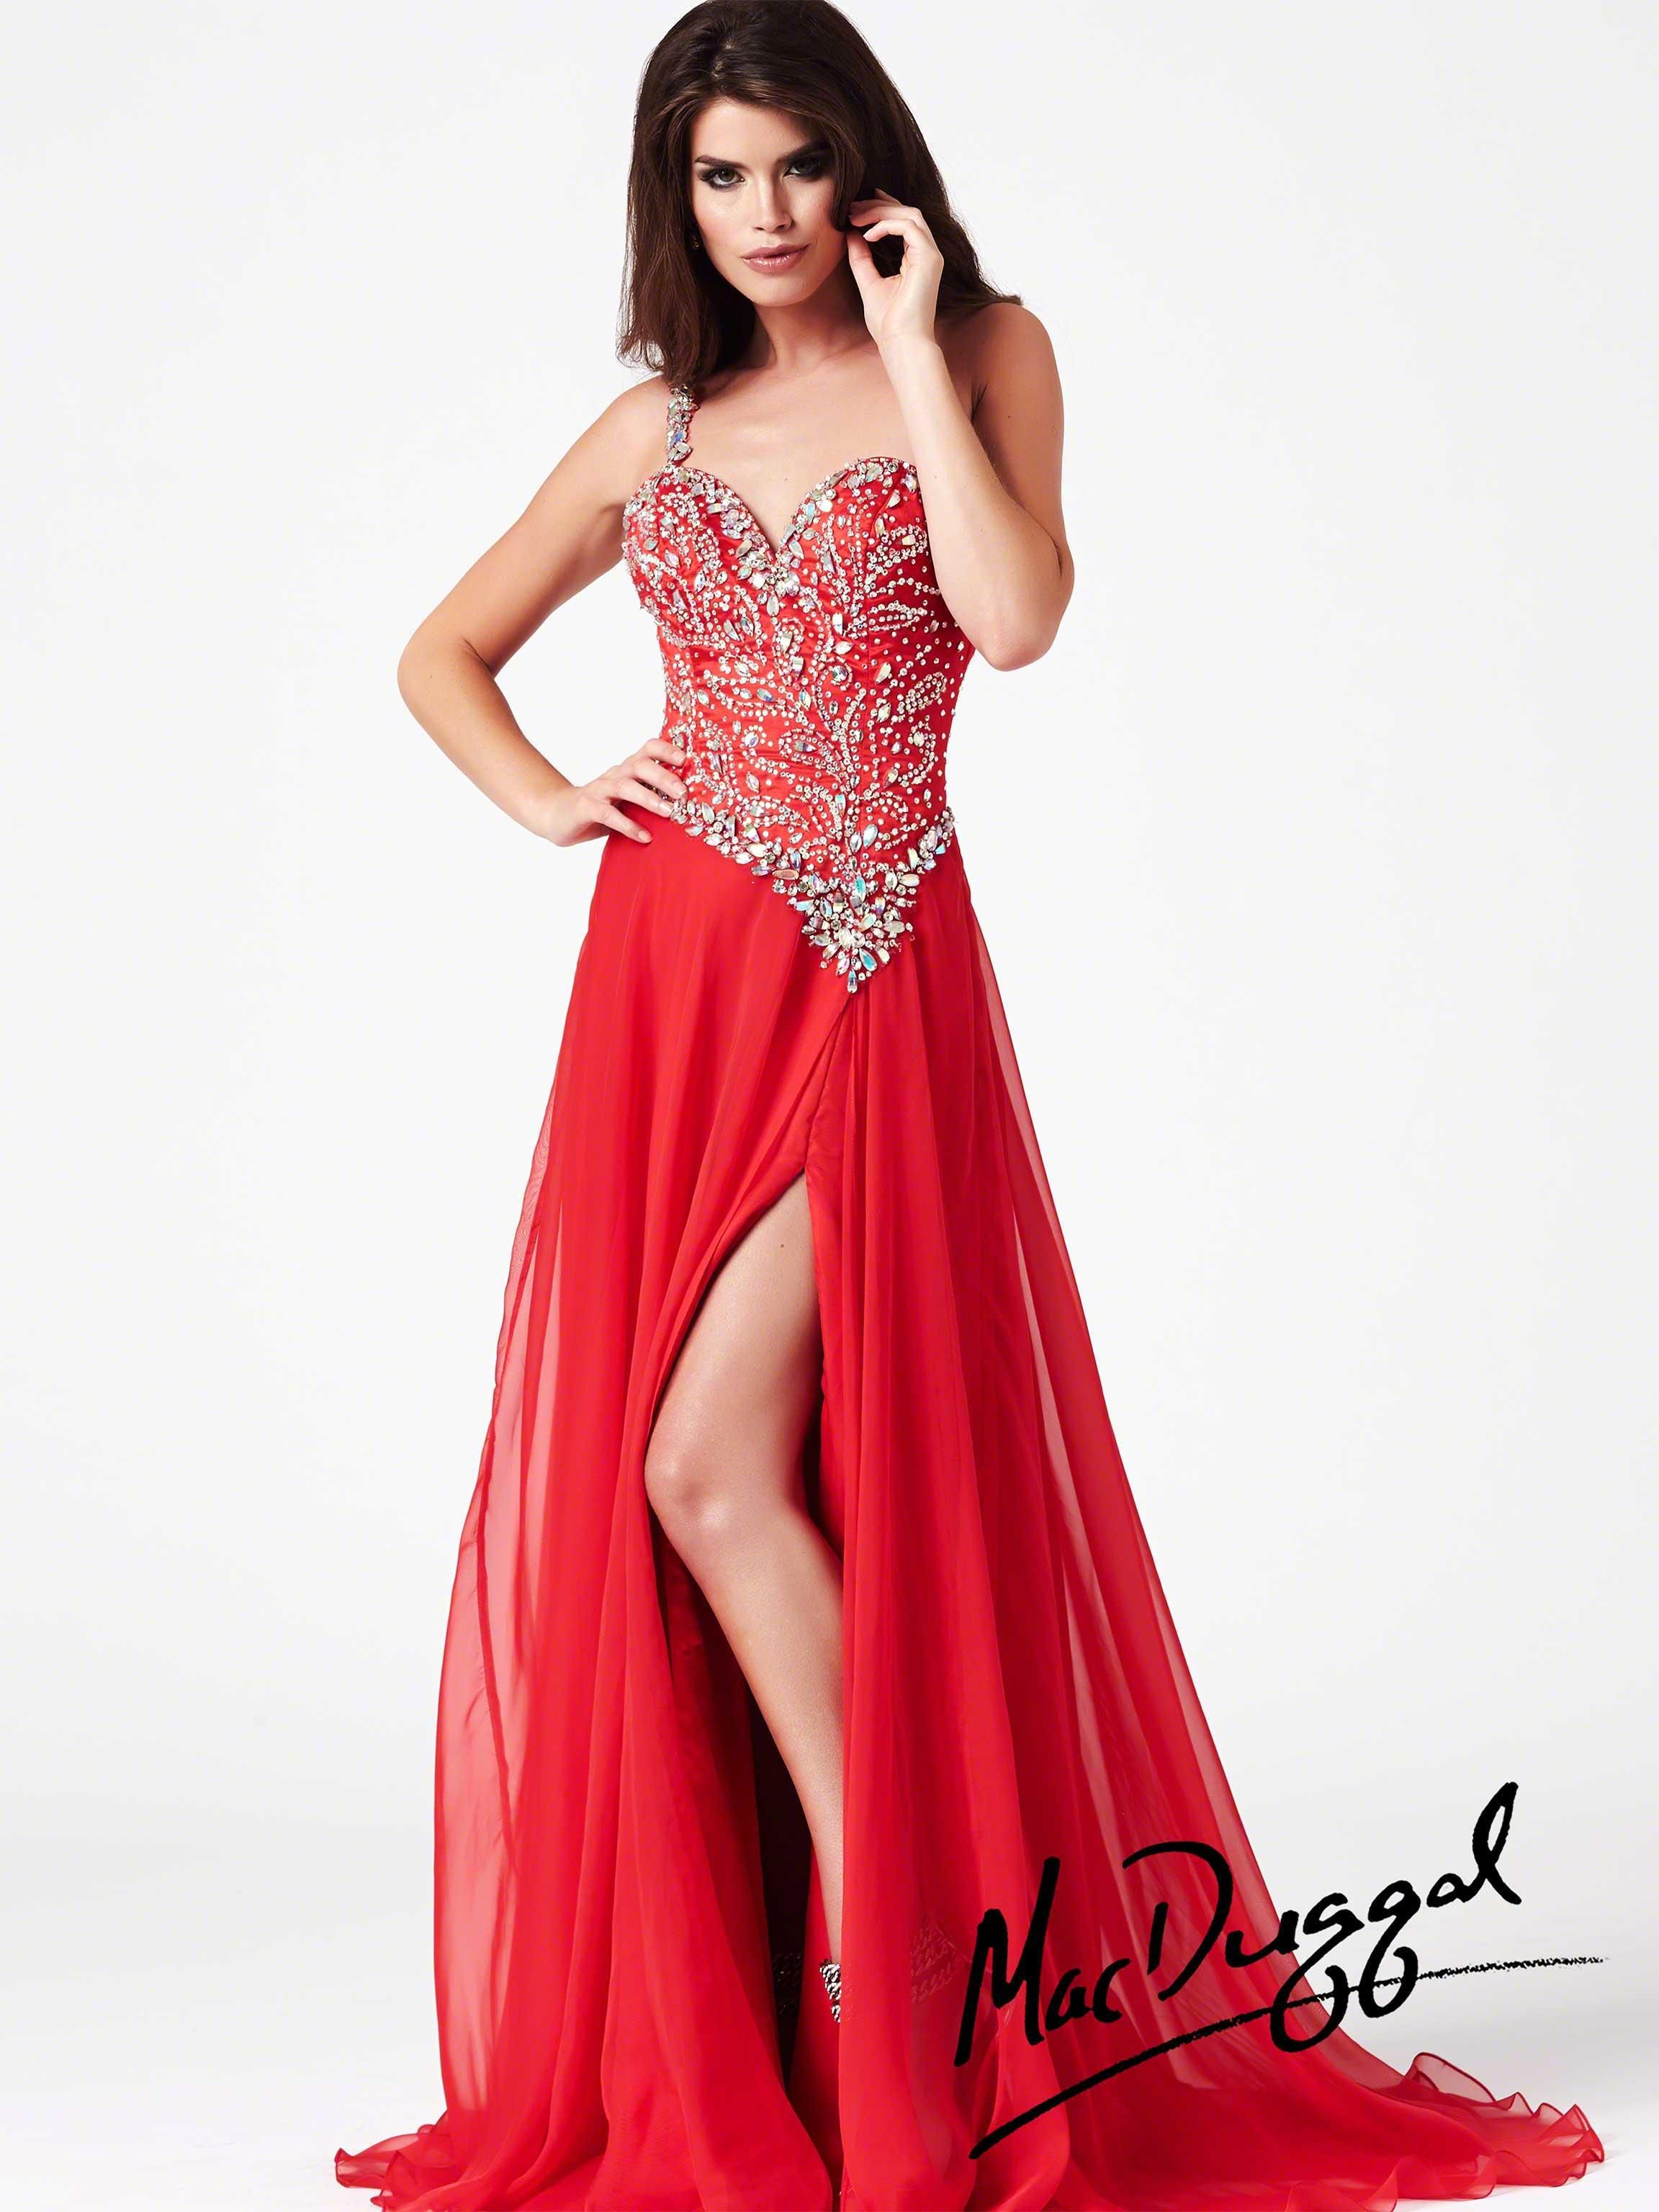 Macduggal prom dress mac duggal prom dresses